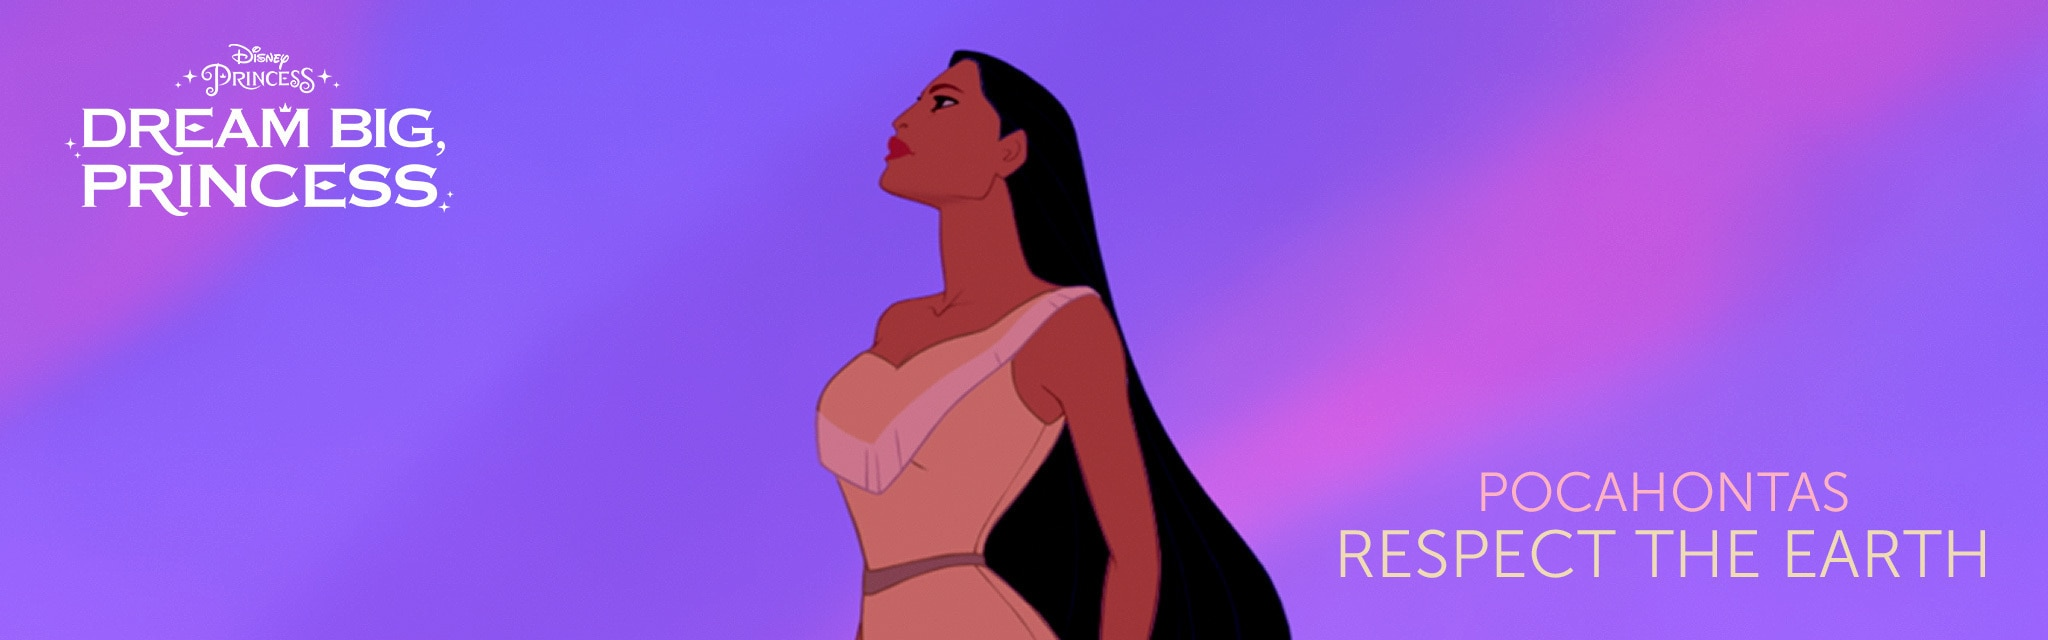 Pocahontas - Respect The Earth